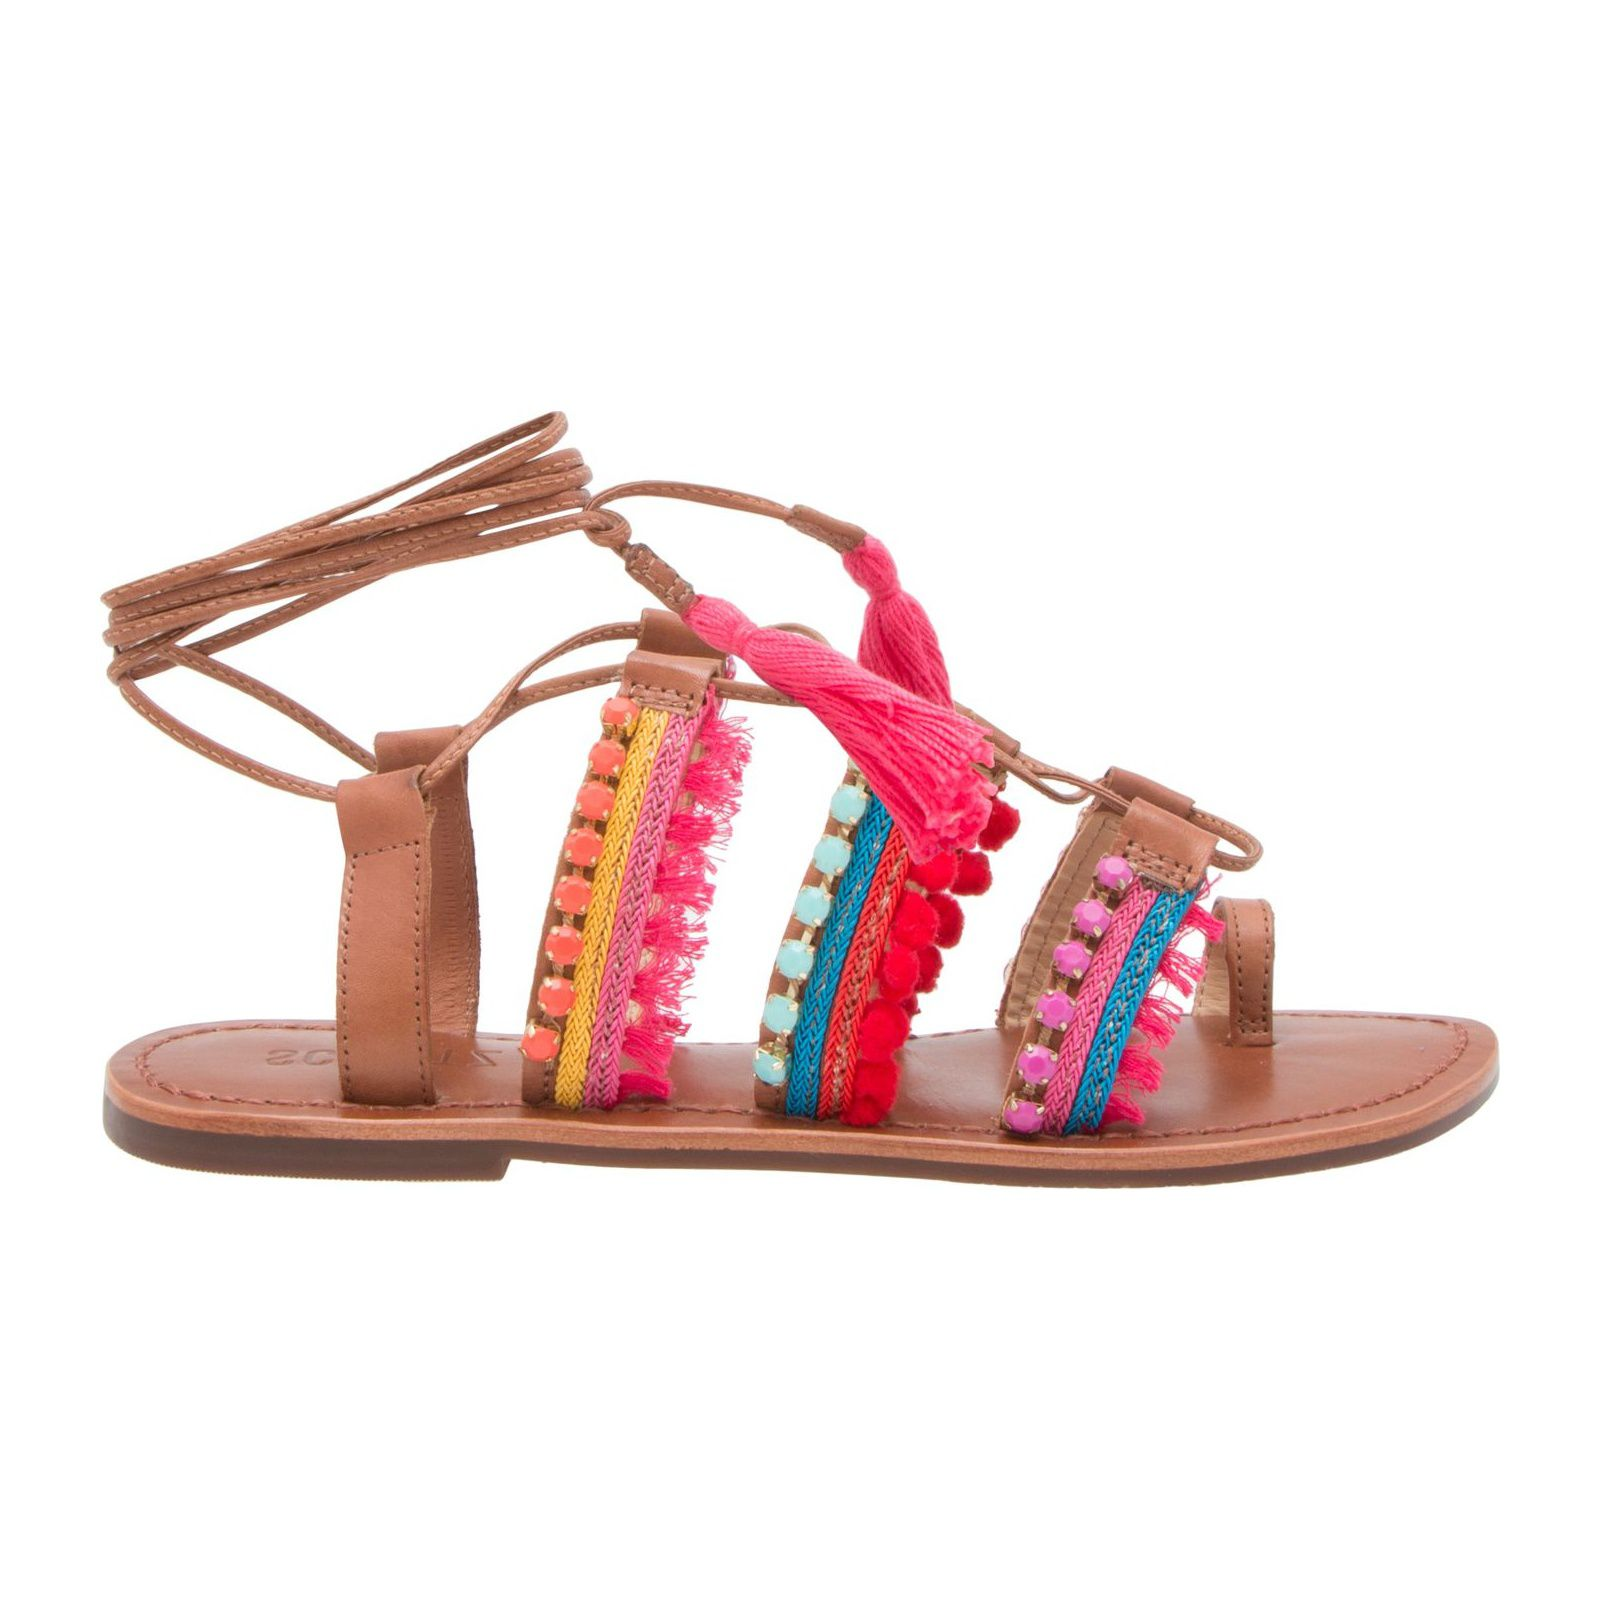 Sandália Rasteira Lace Up Flourescent Gipsy - Marrom